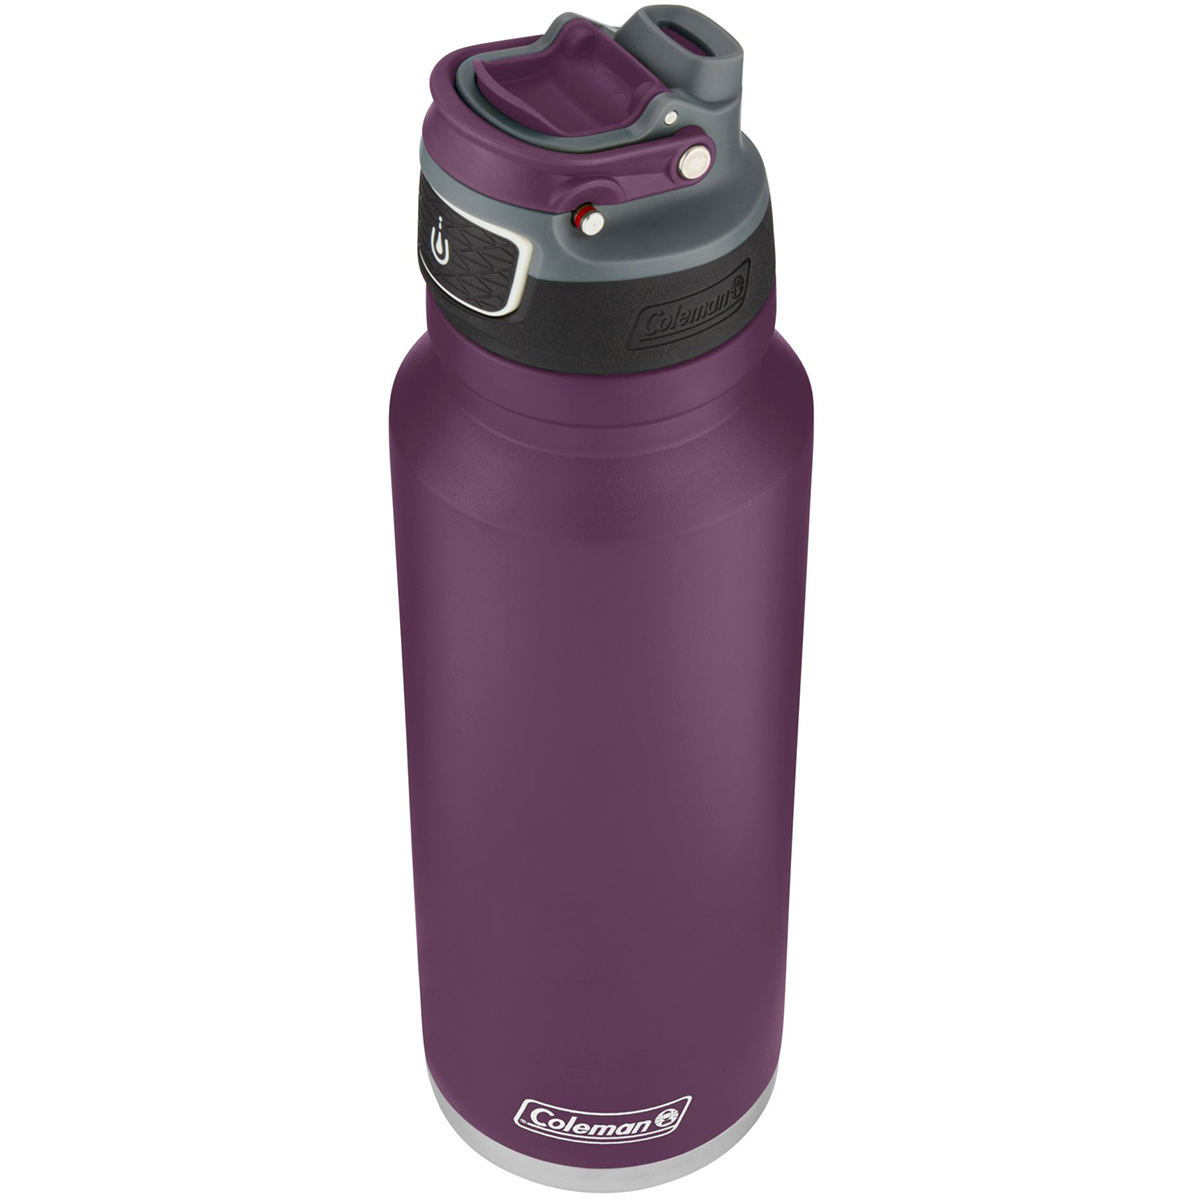 thumbnail 28 - Coleman 40 oz. Free Flow Autoseal Insulated Stainless Steel Water Bottle